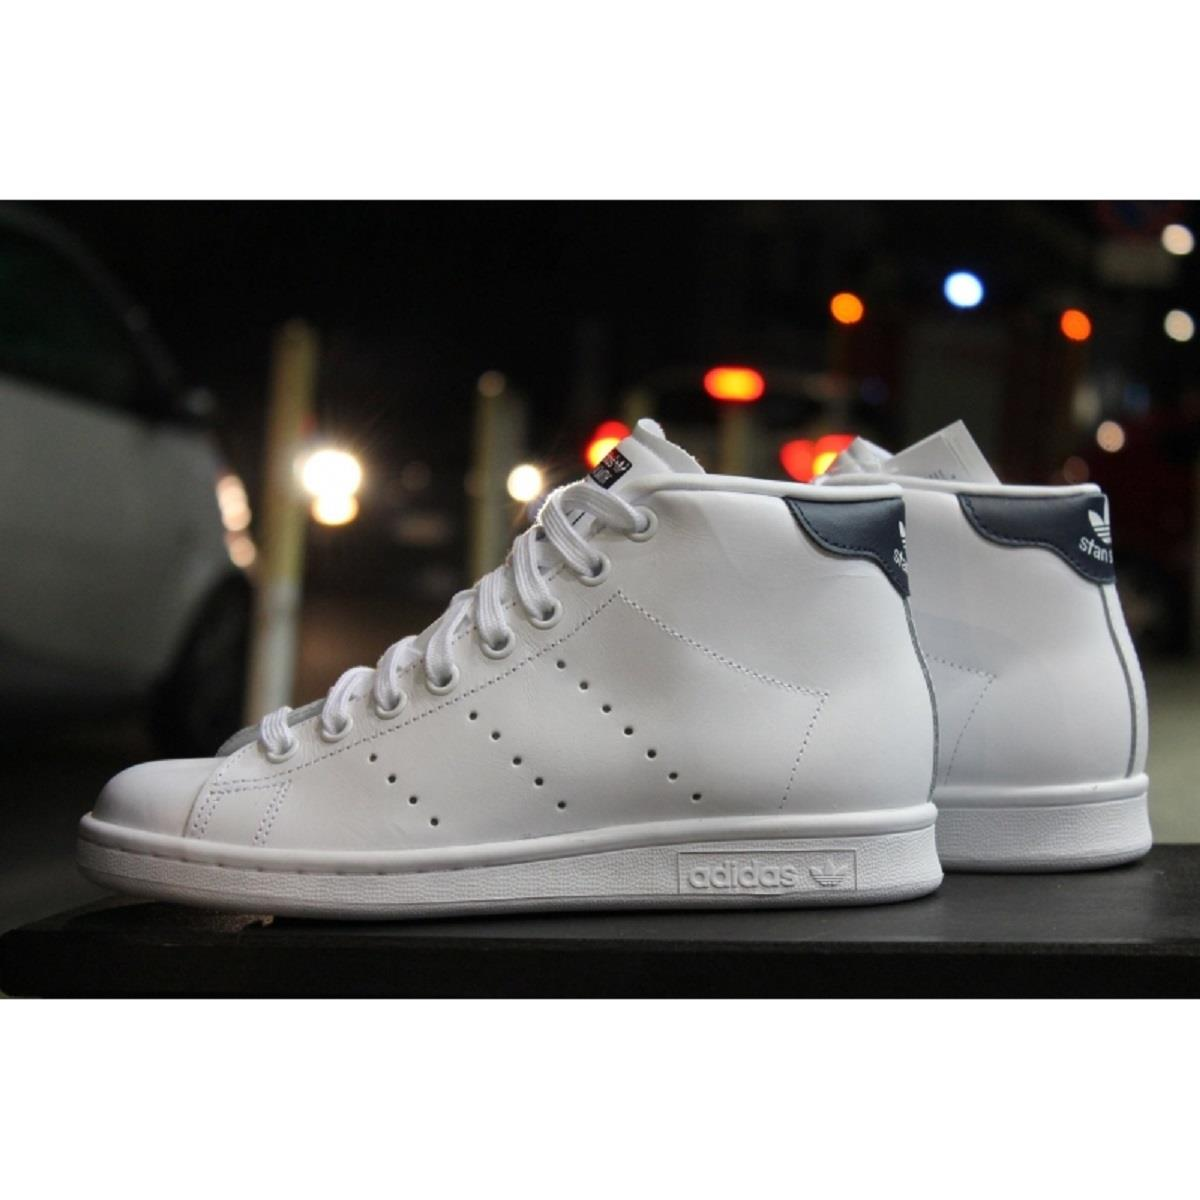 hot sale online eb47e 34c78 scarpe adidas collo alto